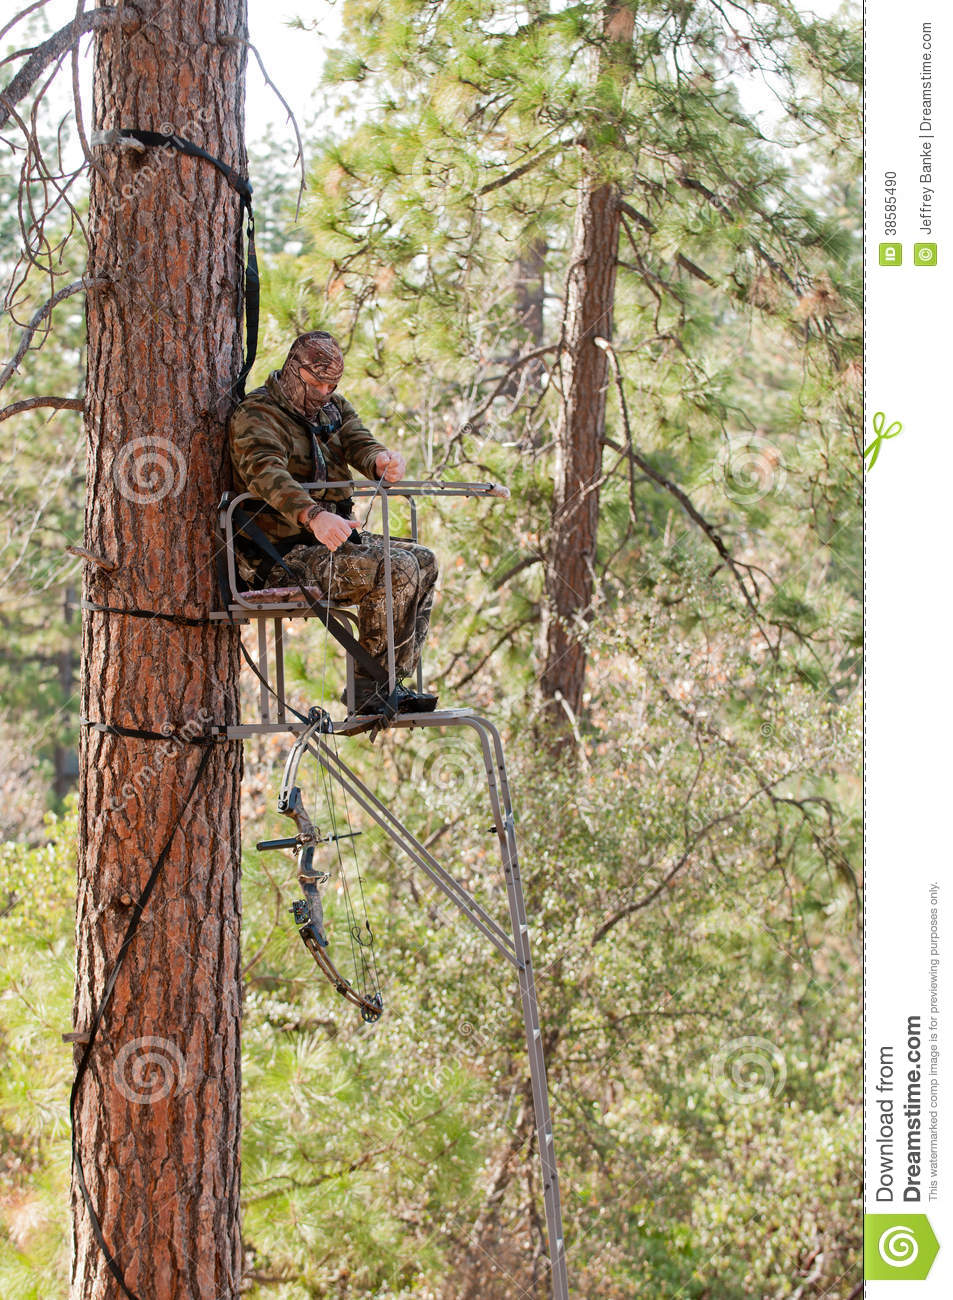 Hunting from a tree stand stock photo image of aiming for Un stand